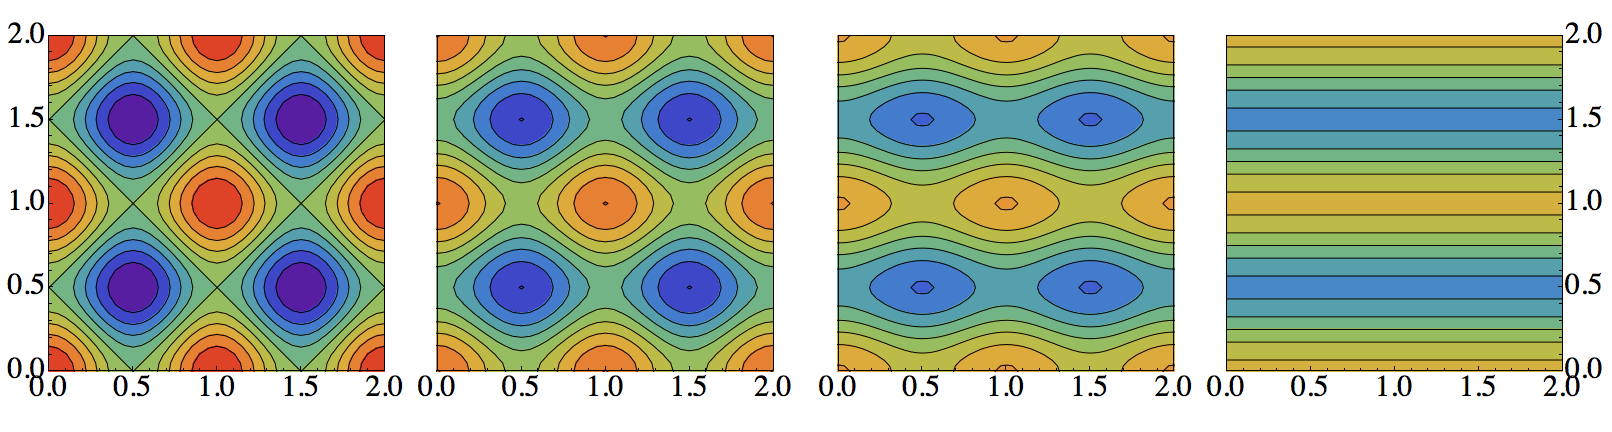 Continuously connecting checkerboards to stripes. We show contours of